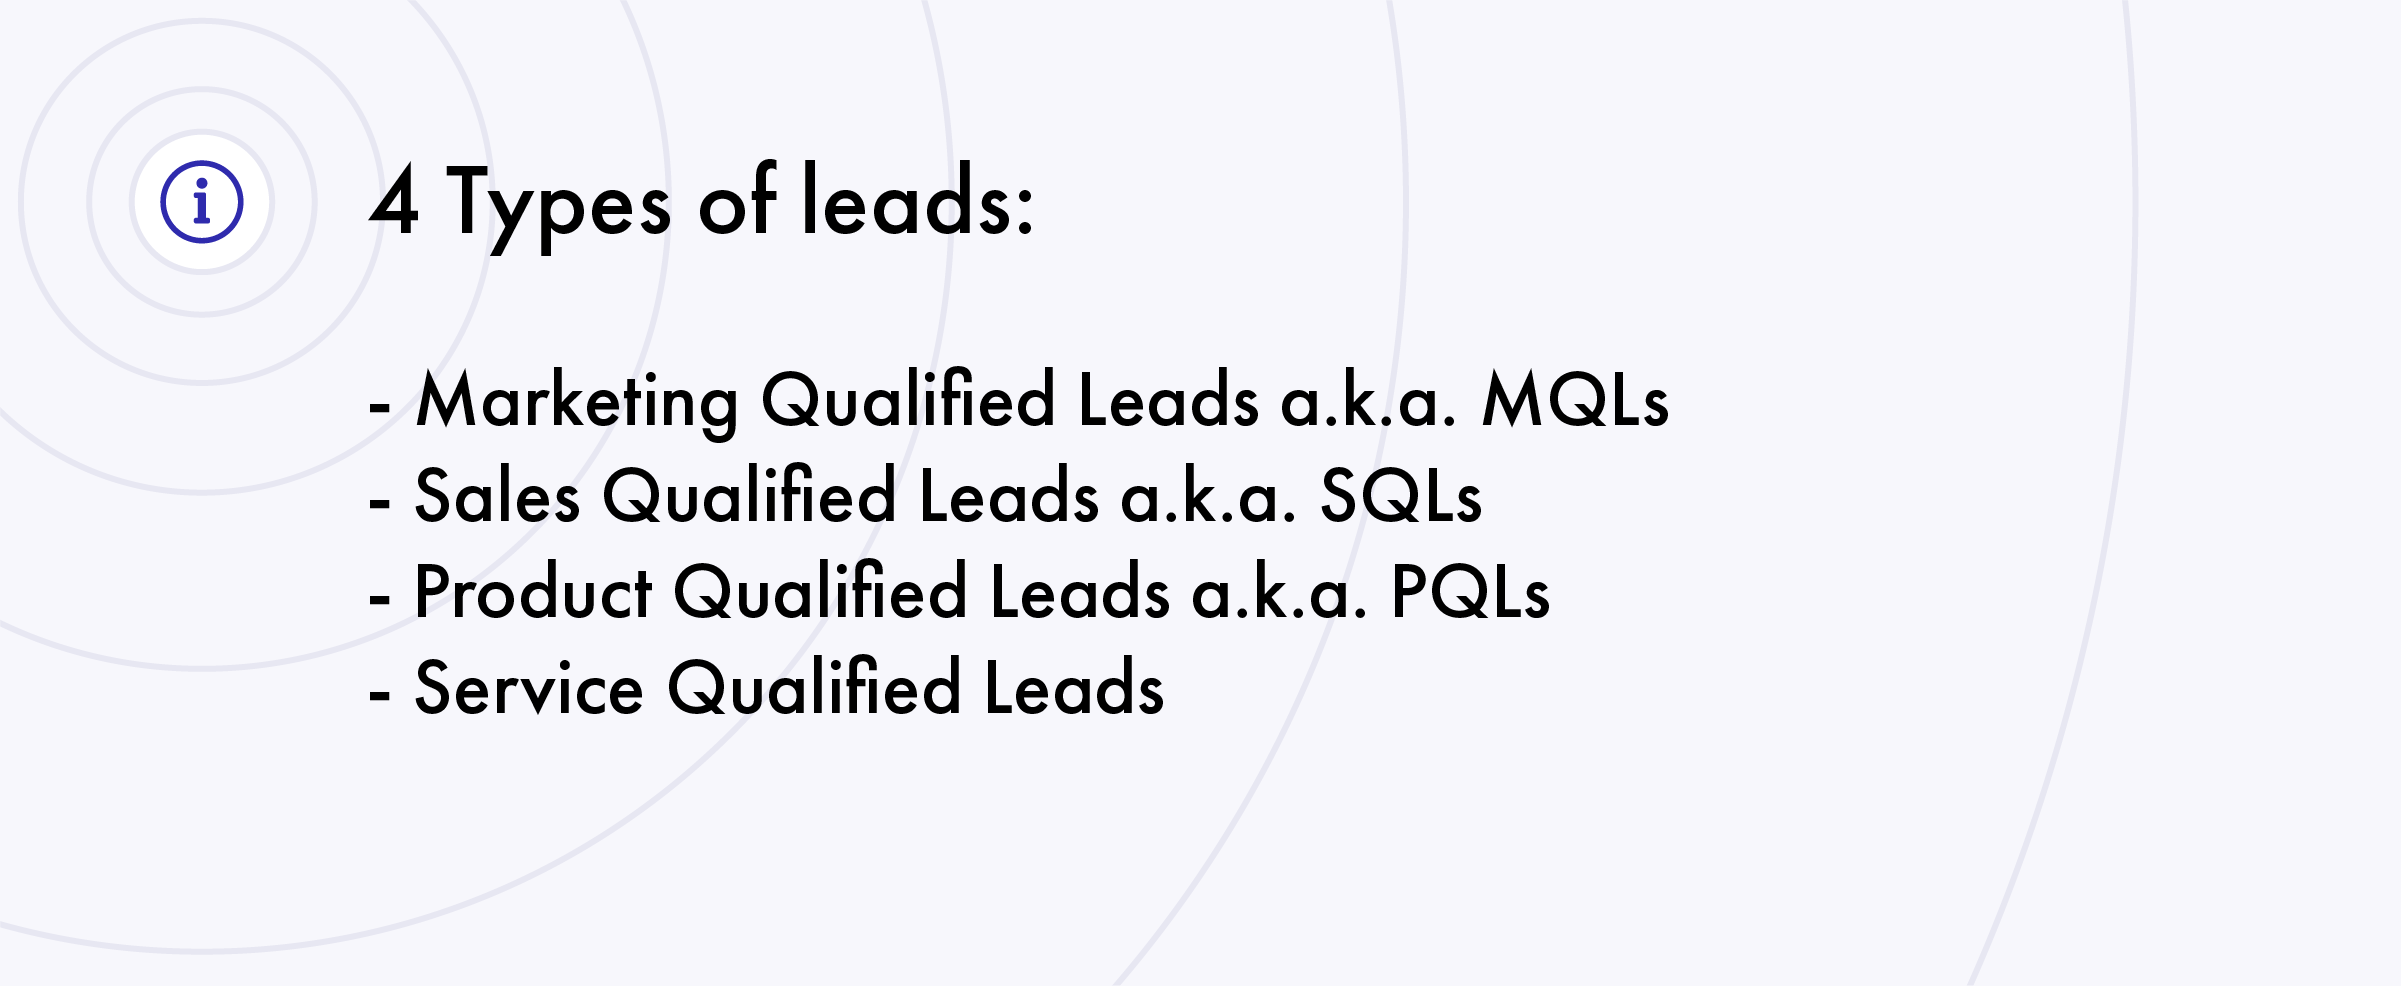 4 types of leads